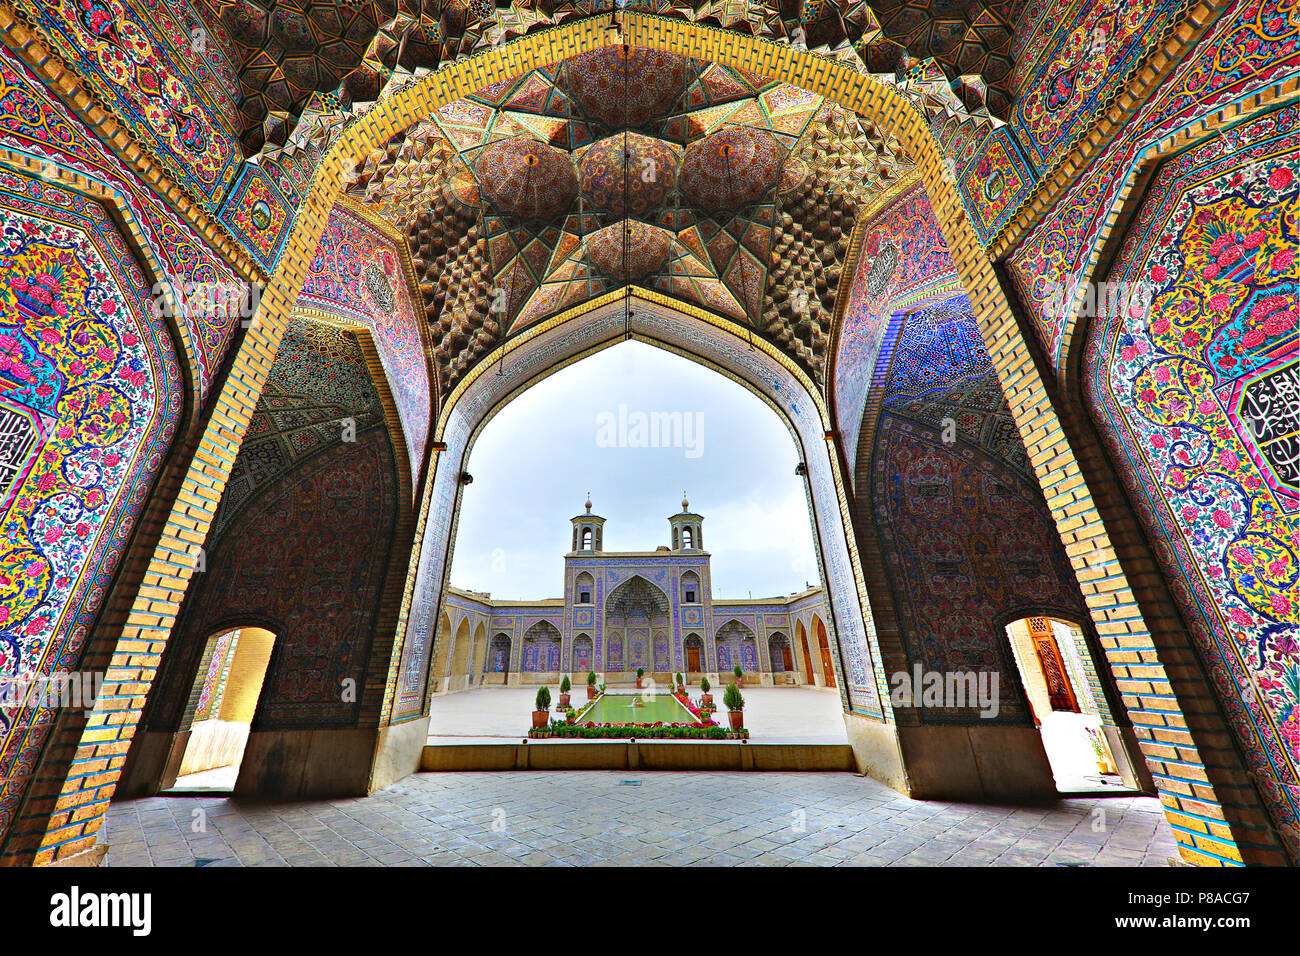 Nasir-Ol-Molk Mosque known also as Pink Mosque, in Shiraz, Iran - Stock Image